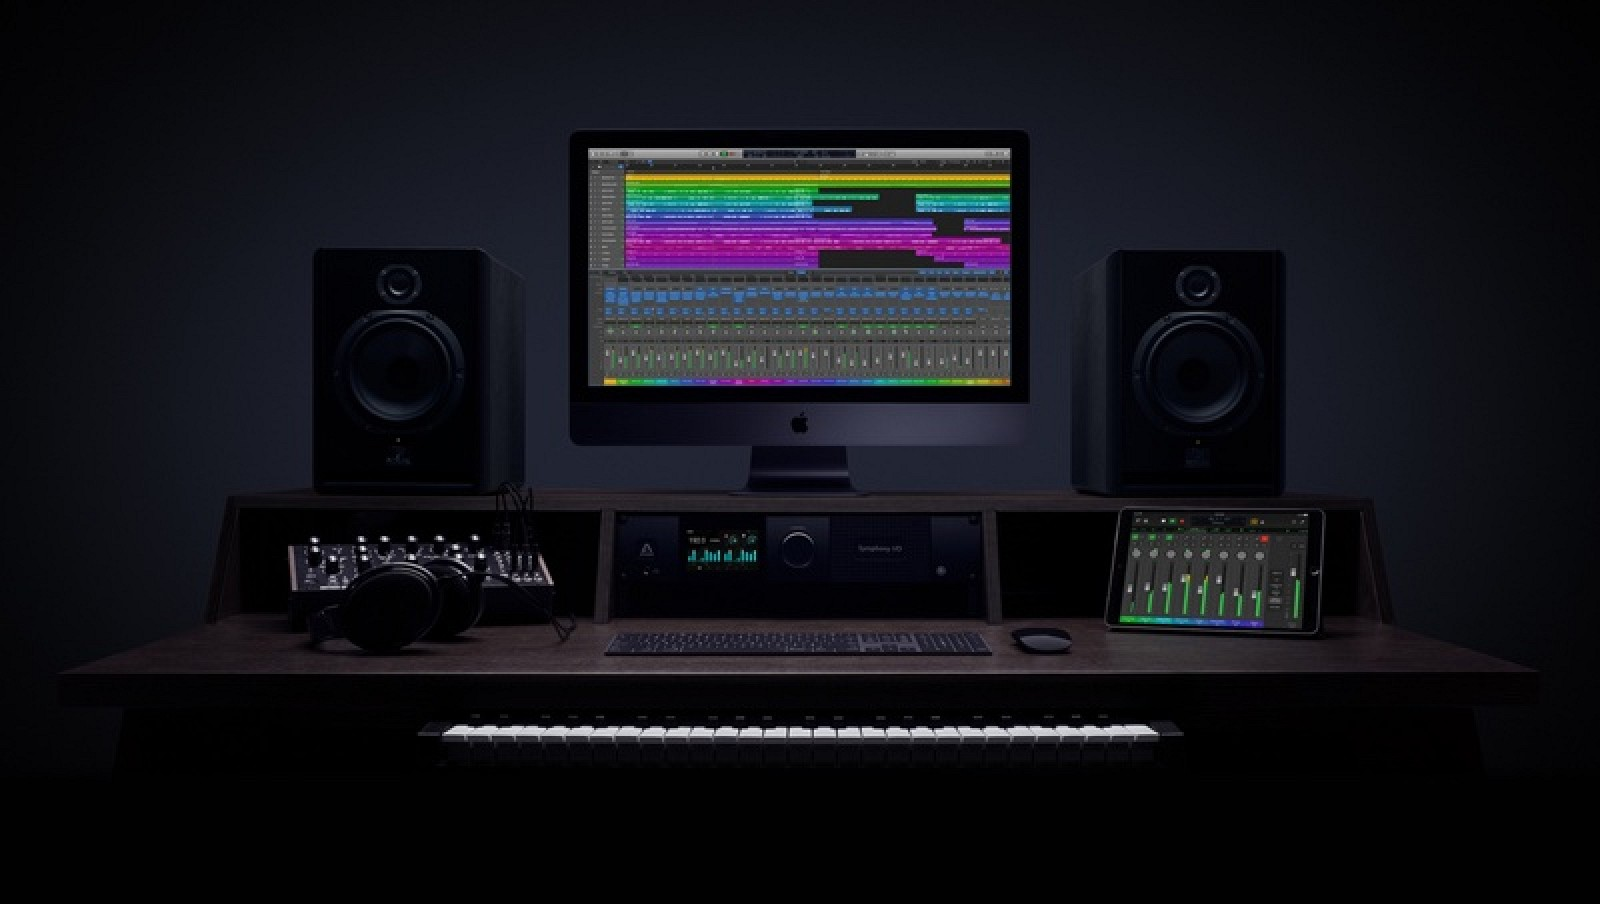 Apple Updates Logic Pro X and MainStage 3 With New Features - MacRumors